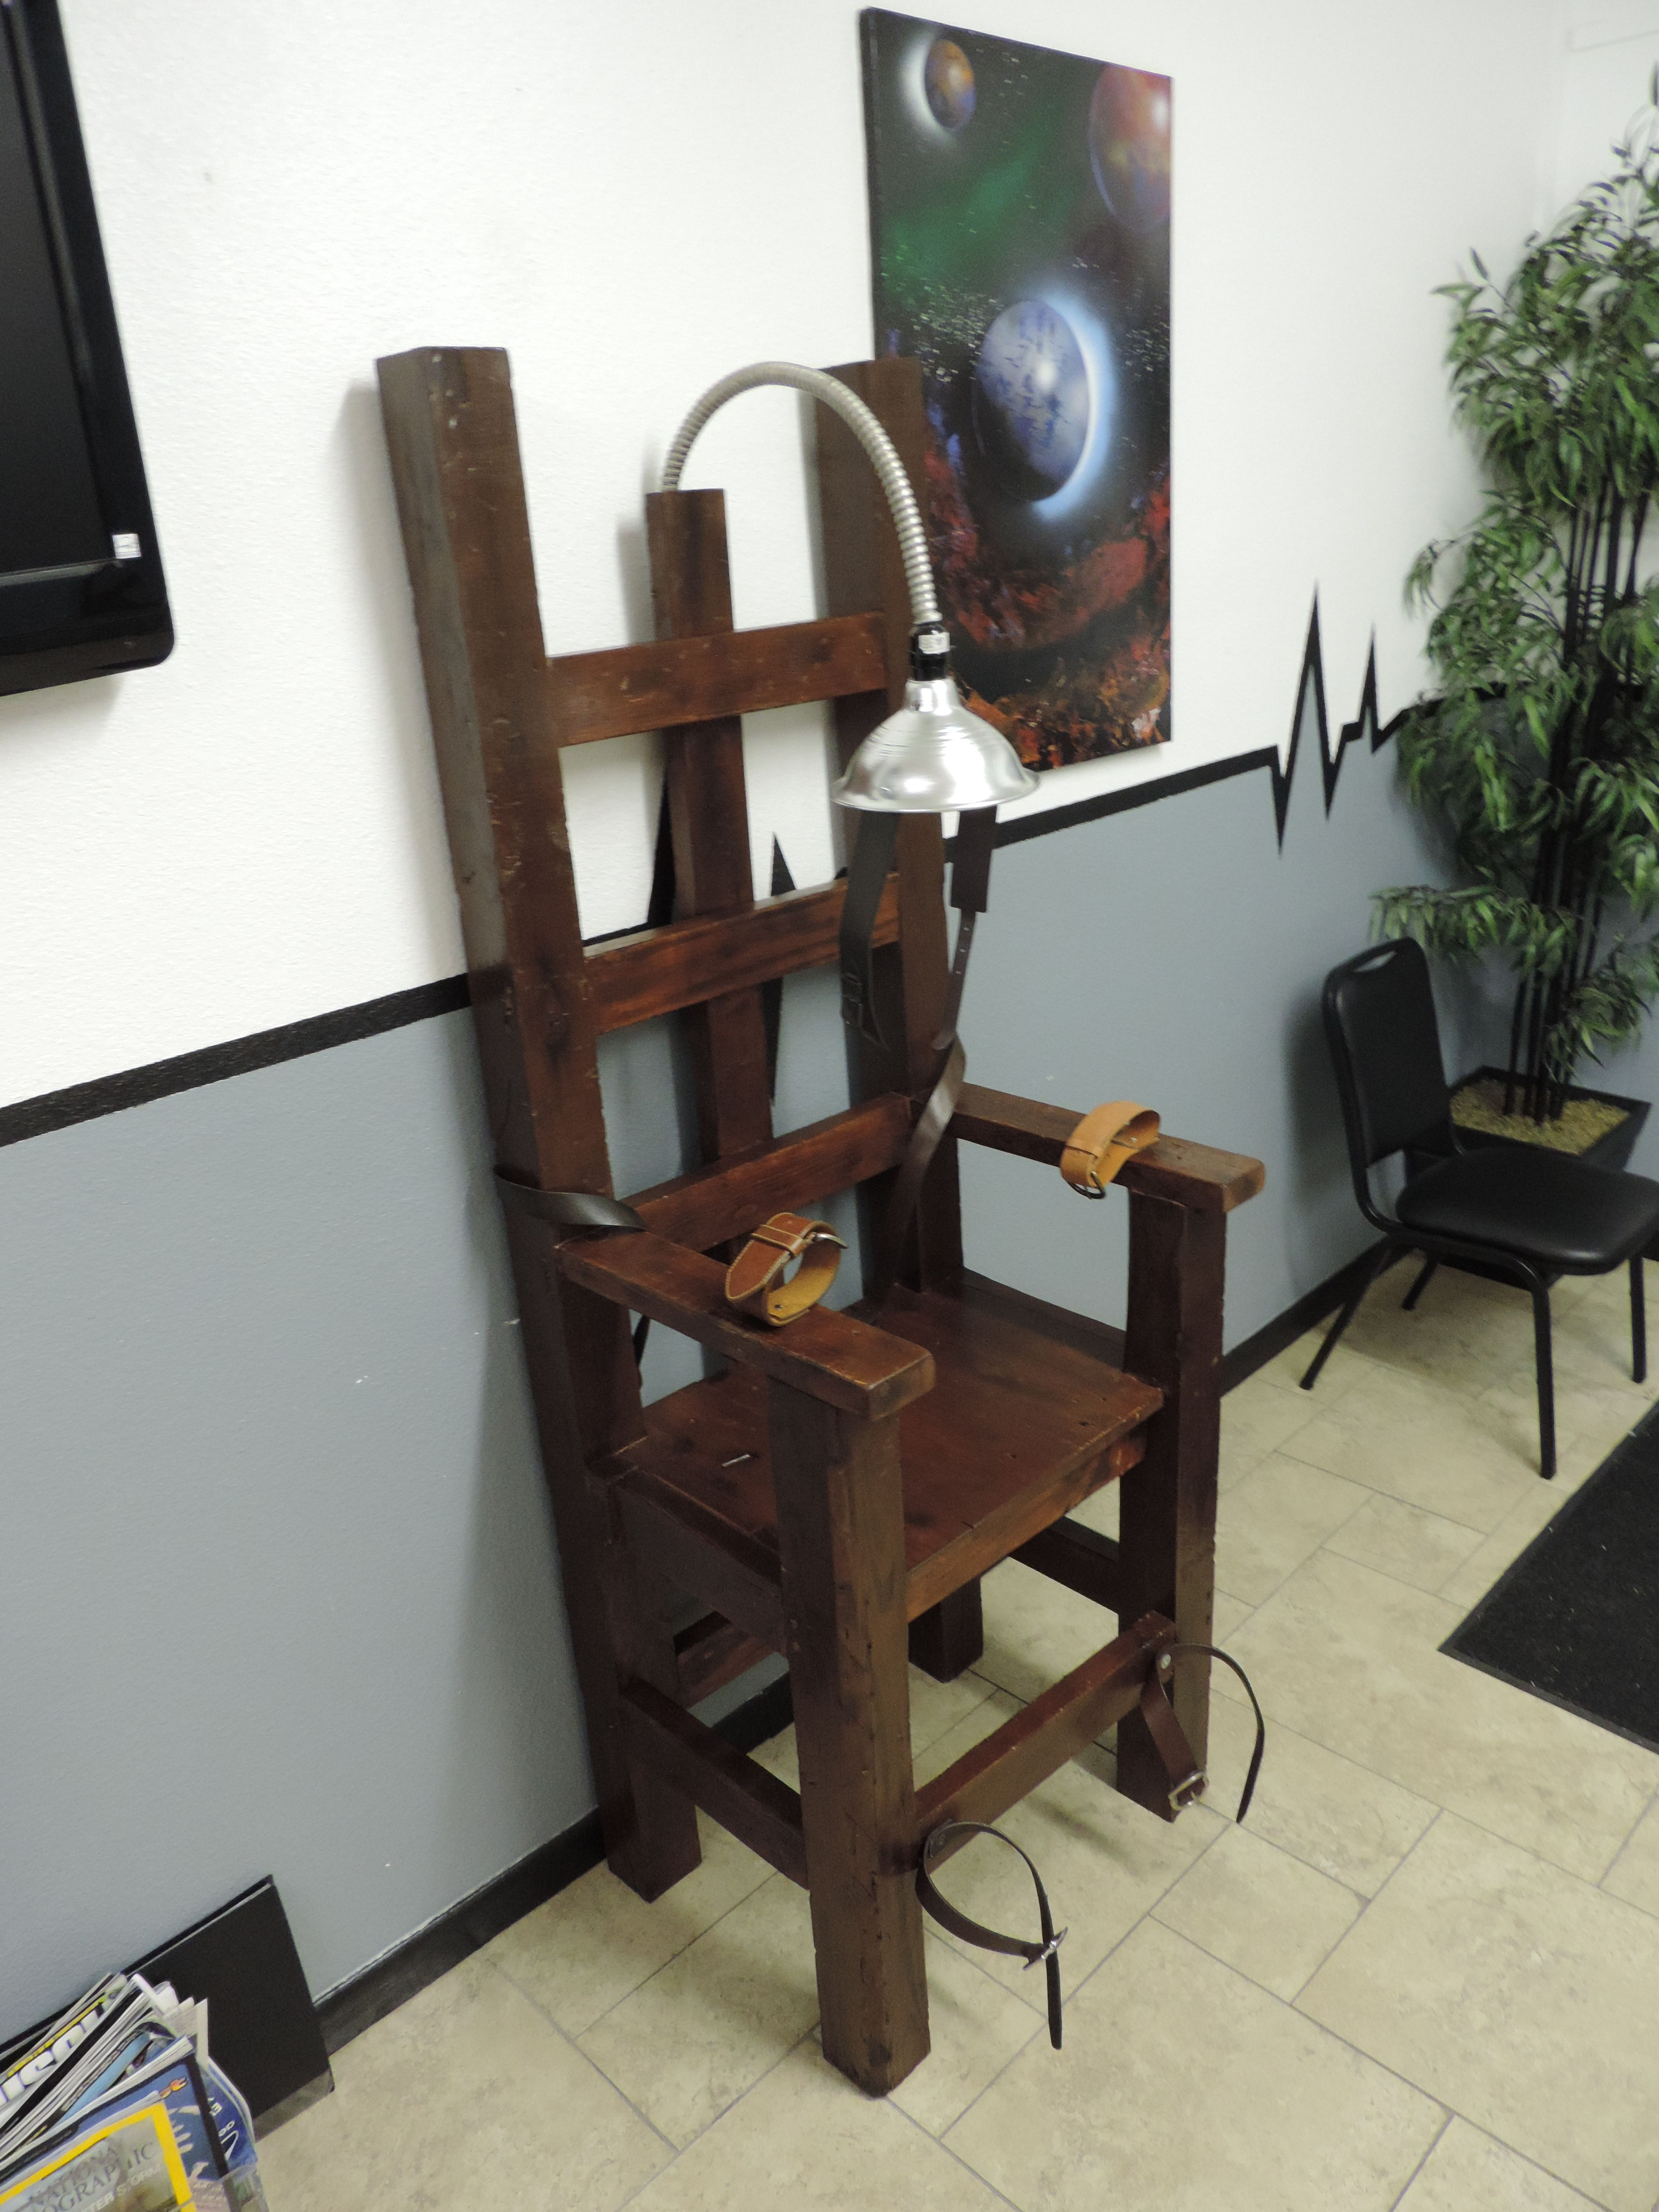 Vintage Electric Chair Car Seat Lounge Chairs I Made For The Shop Custom Art